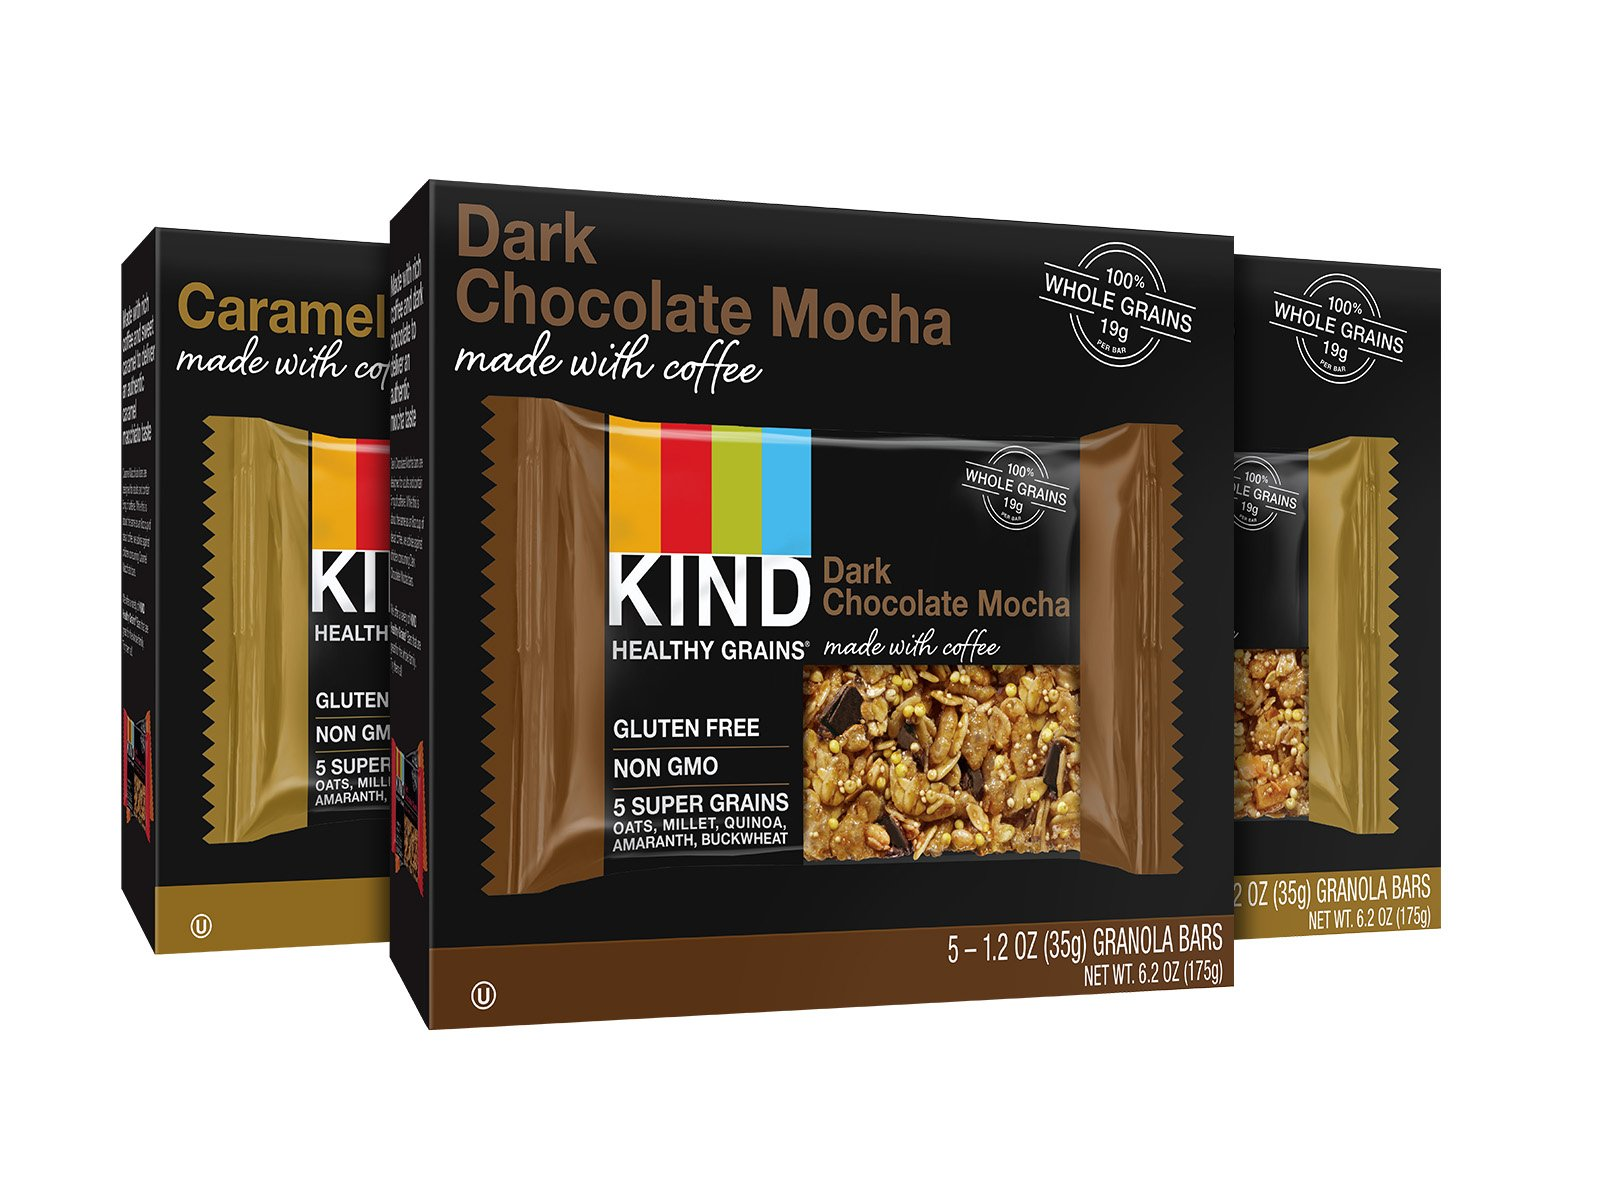 KIND Healthy Grains Granola Bars, Coffee Lovers Variety Pack, Gluten Free, 1.2 oz Bars, 15 Count